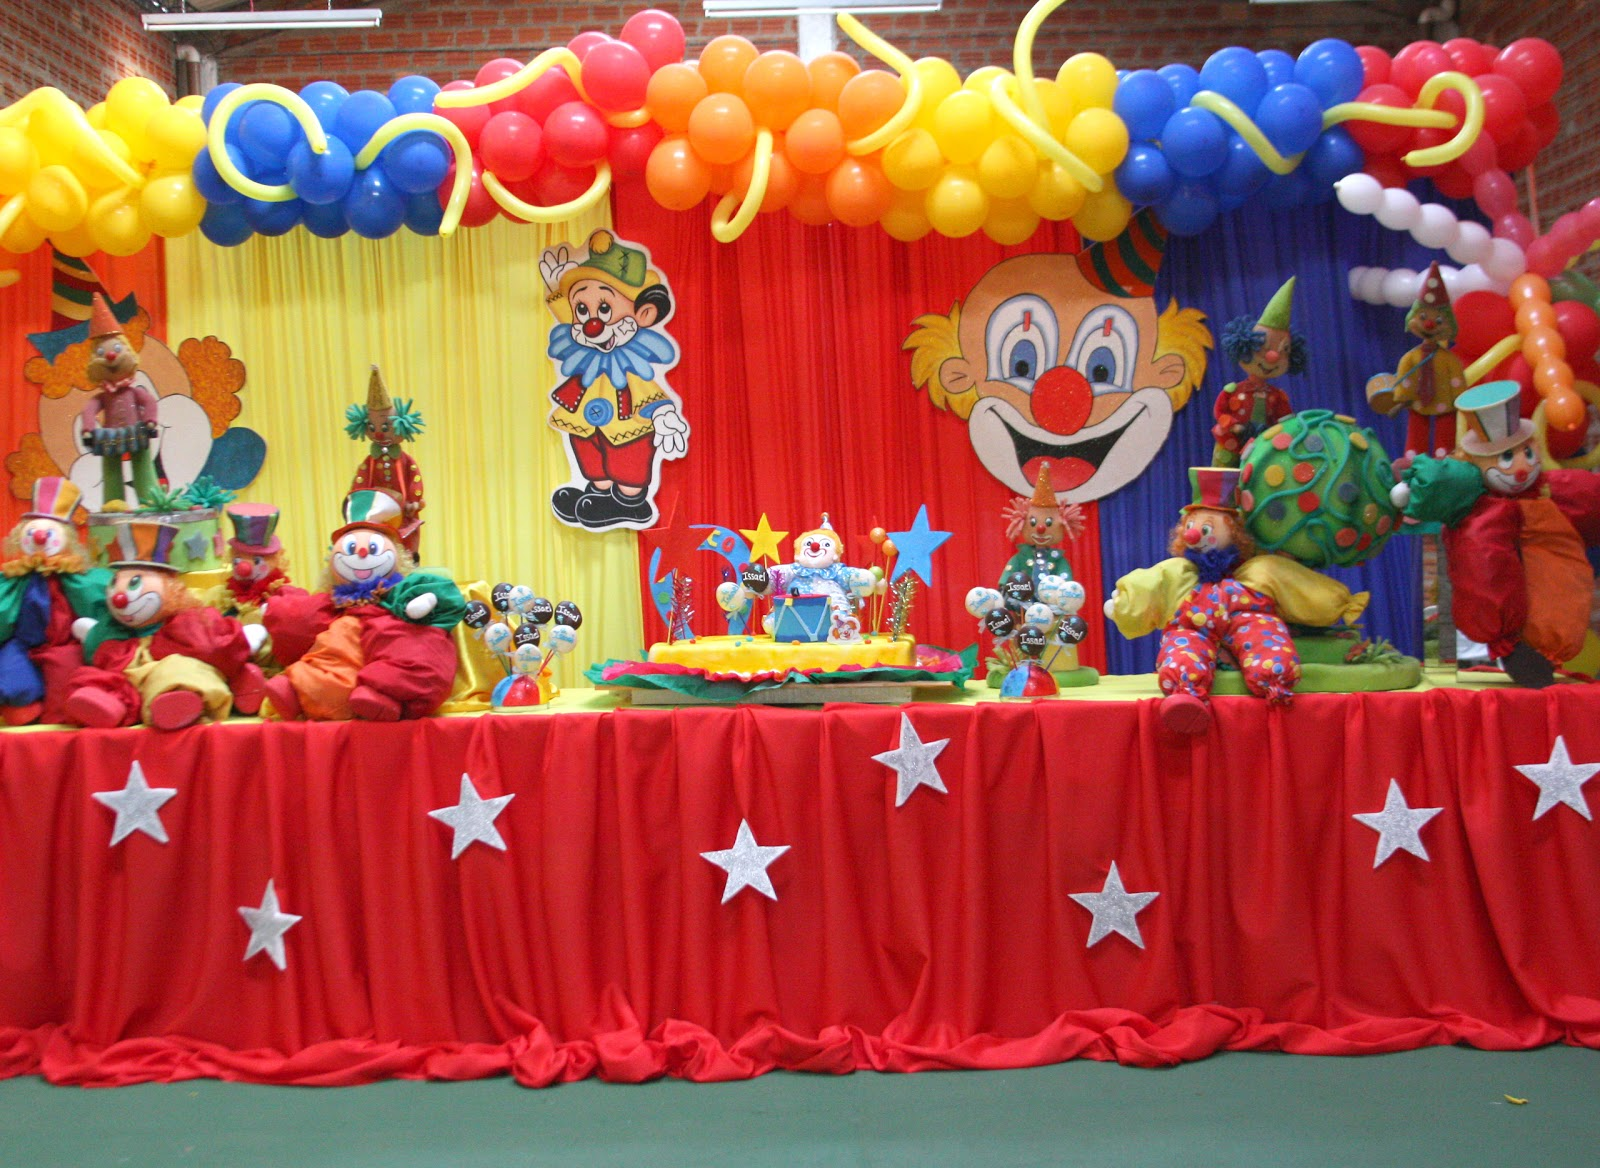 A y p fiestas decoracion de cumplea os infantiles for Ideas decoracion cumpleanos